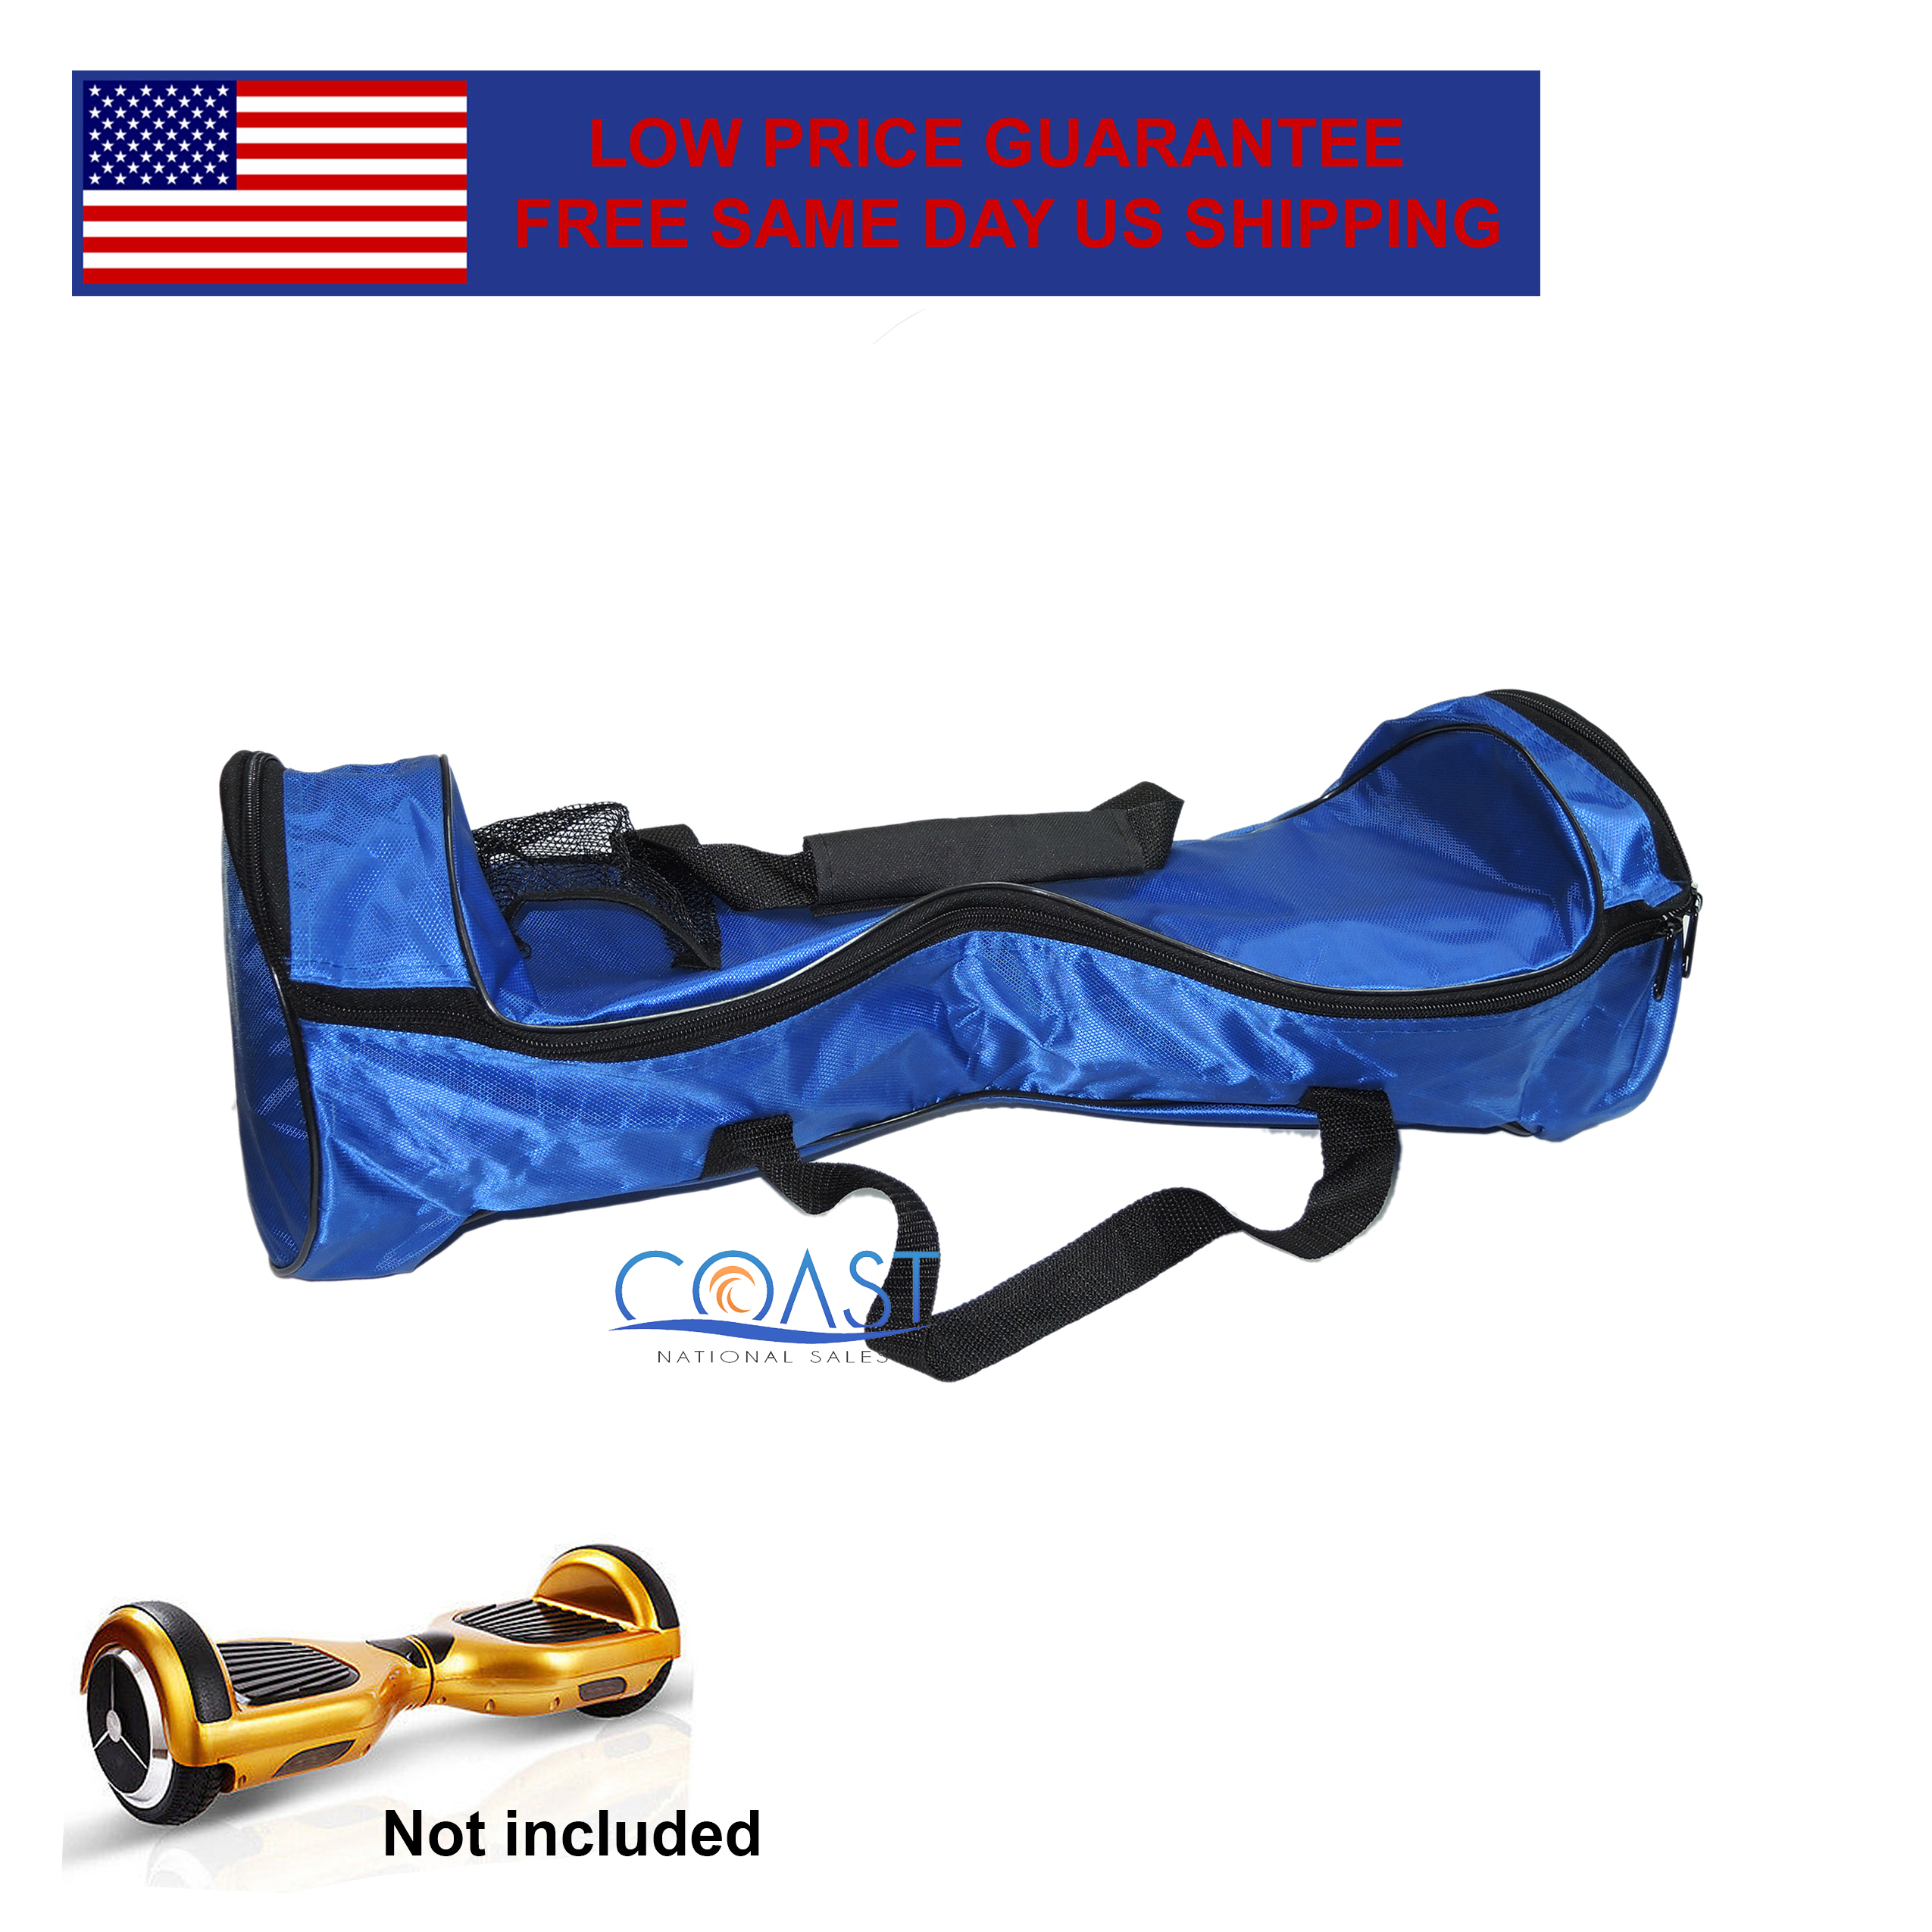 c51844dcc1 Details about Smart Self Balancing Electric Unicycle Scooter Wheel Blue Carrying  Bag Handbag